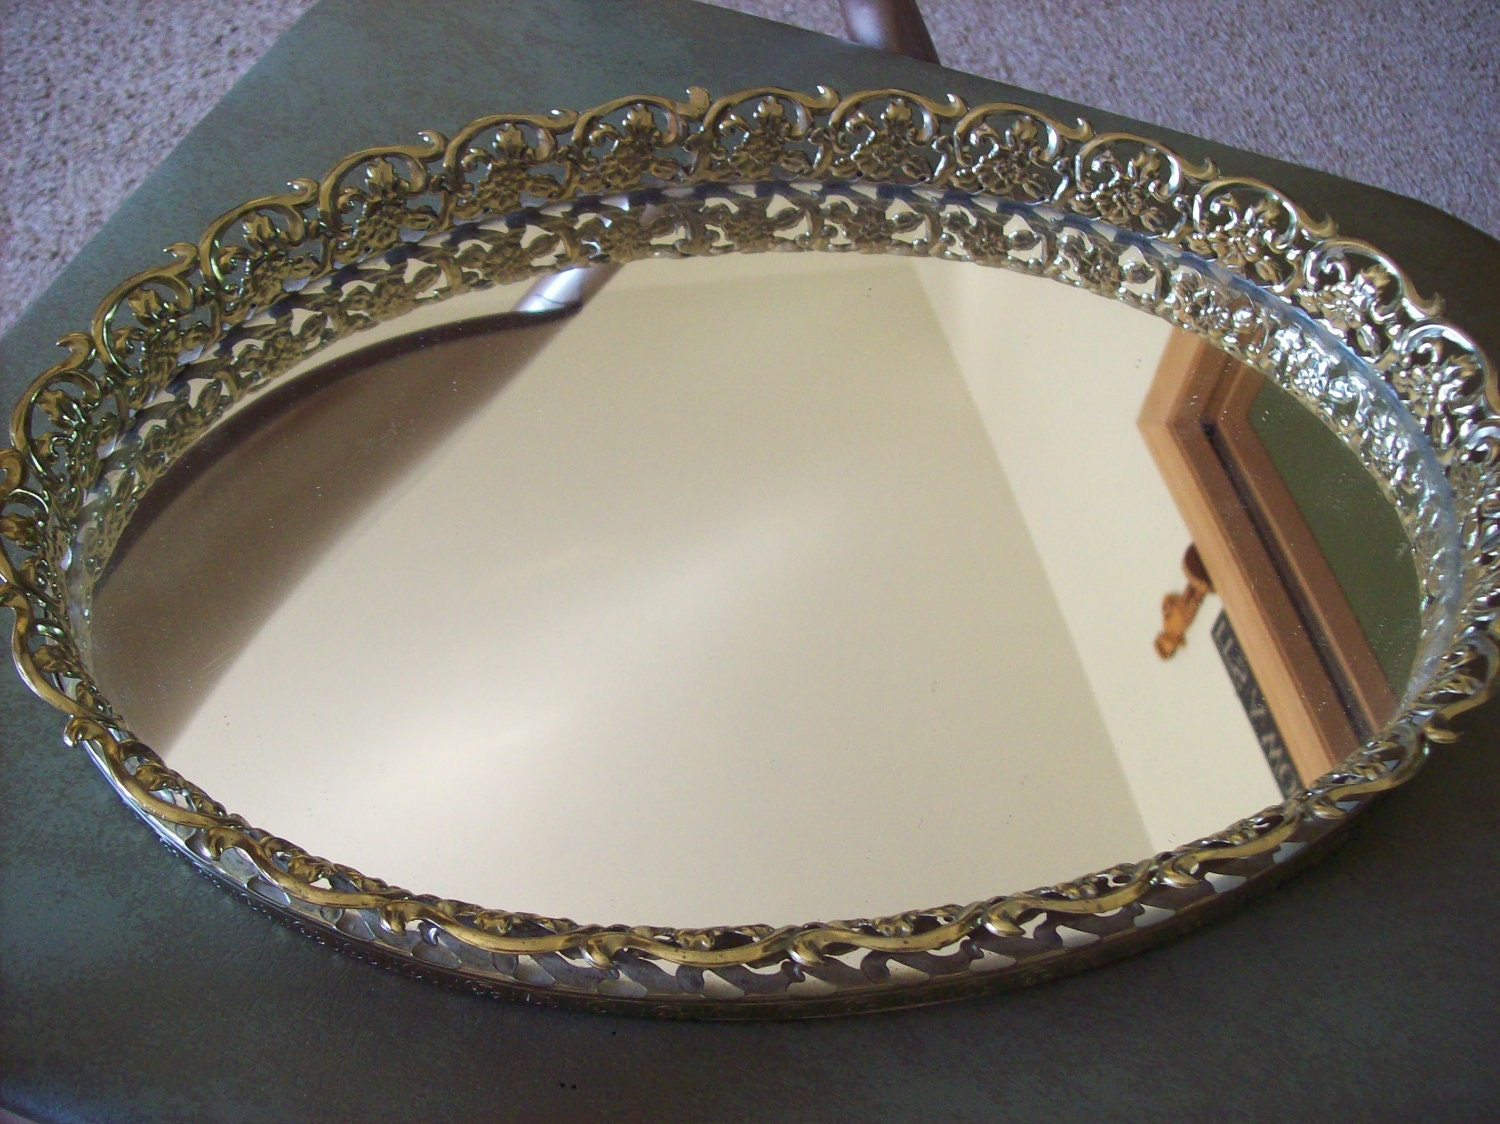 Vintage Perfume Tray Mirrored Vanity Tray by kris67 on Etsy